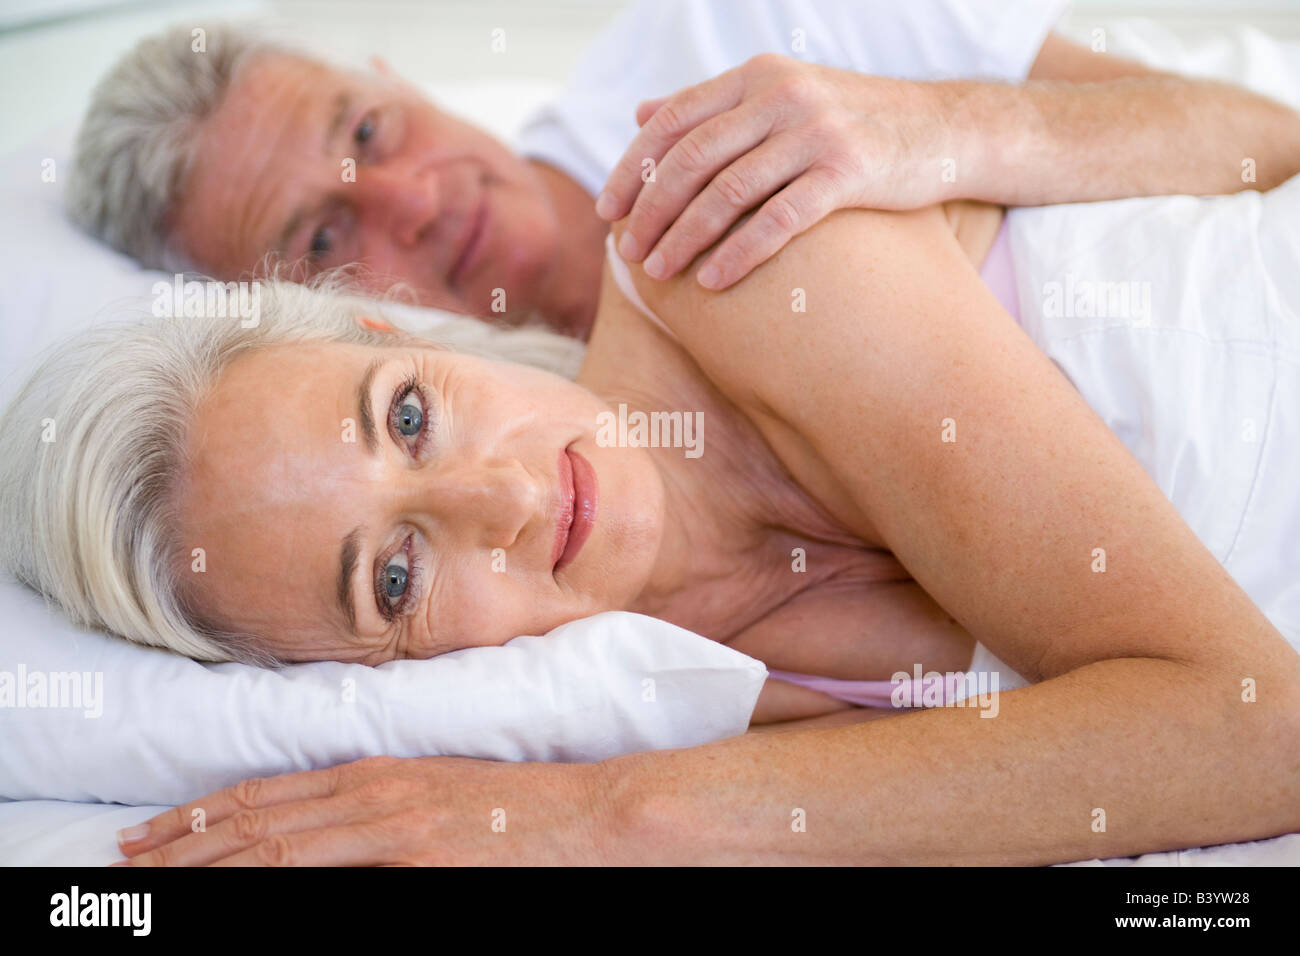 Couple lying in bed together smiling - Stock Image